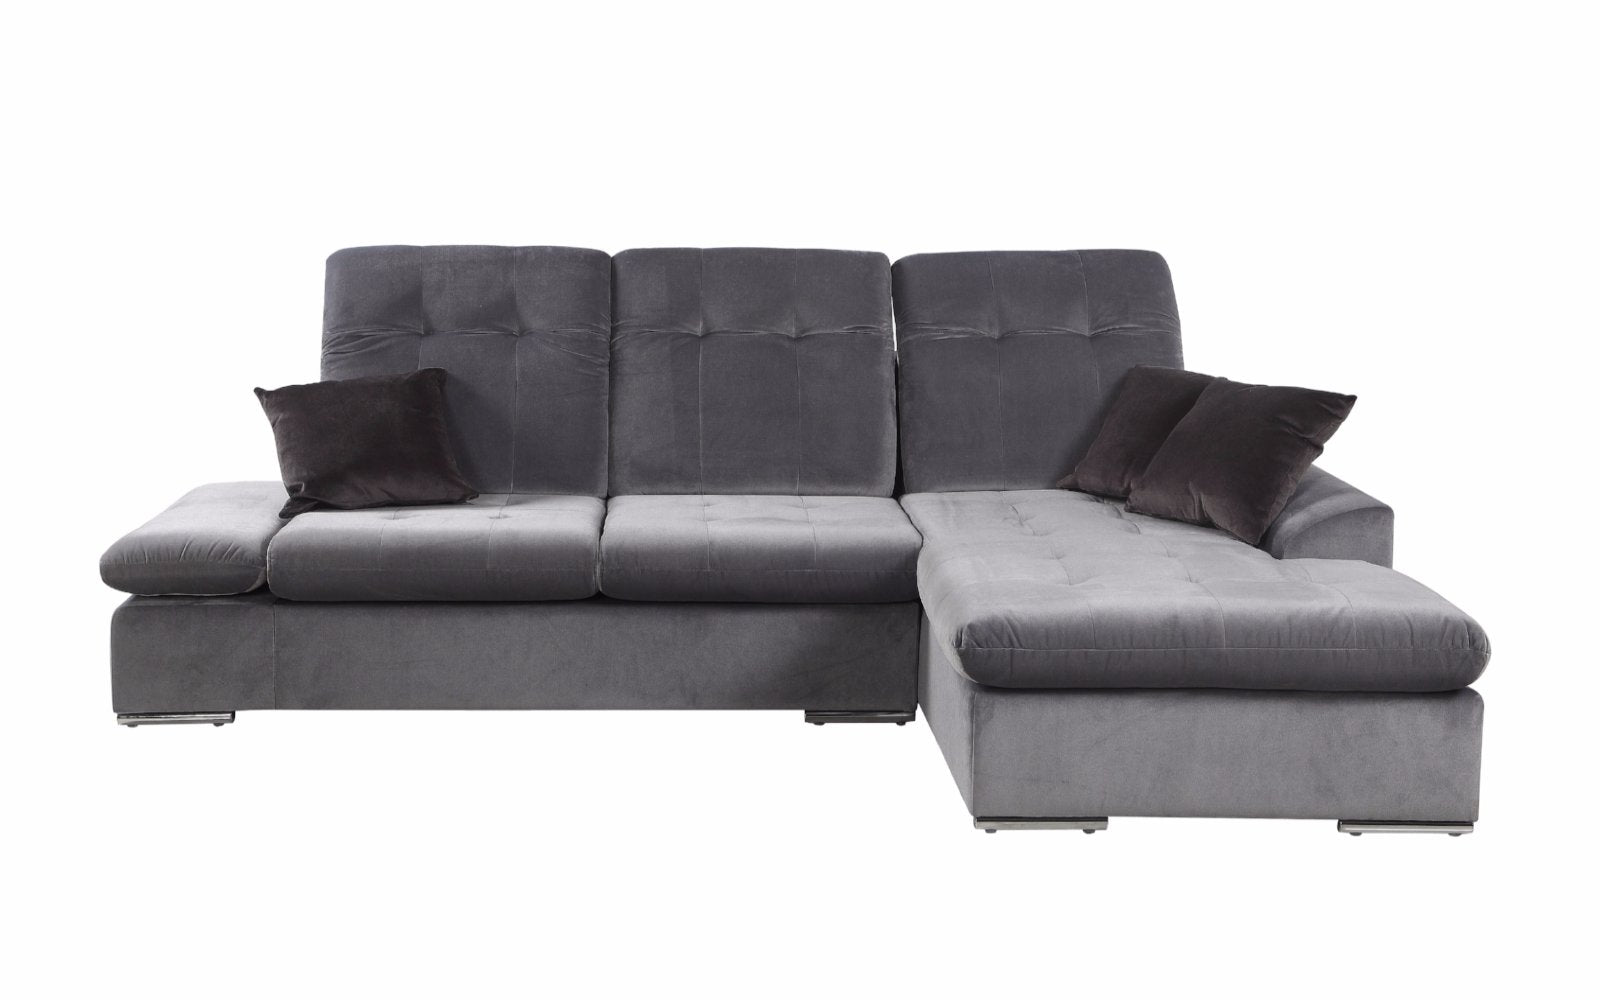 Microfiber Sectional Sofa Right Chaise Image